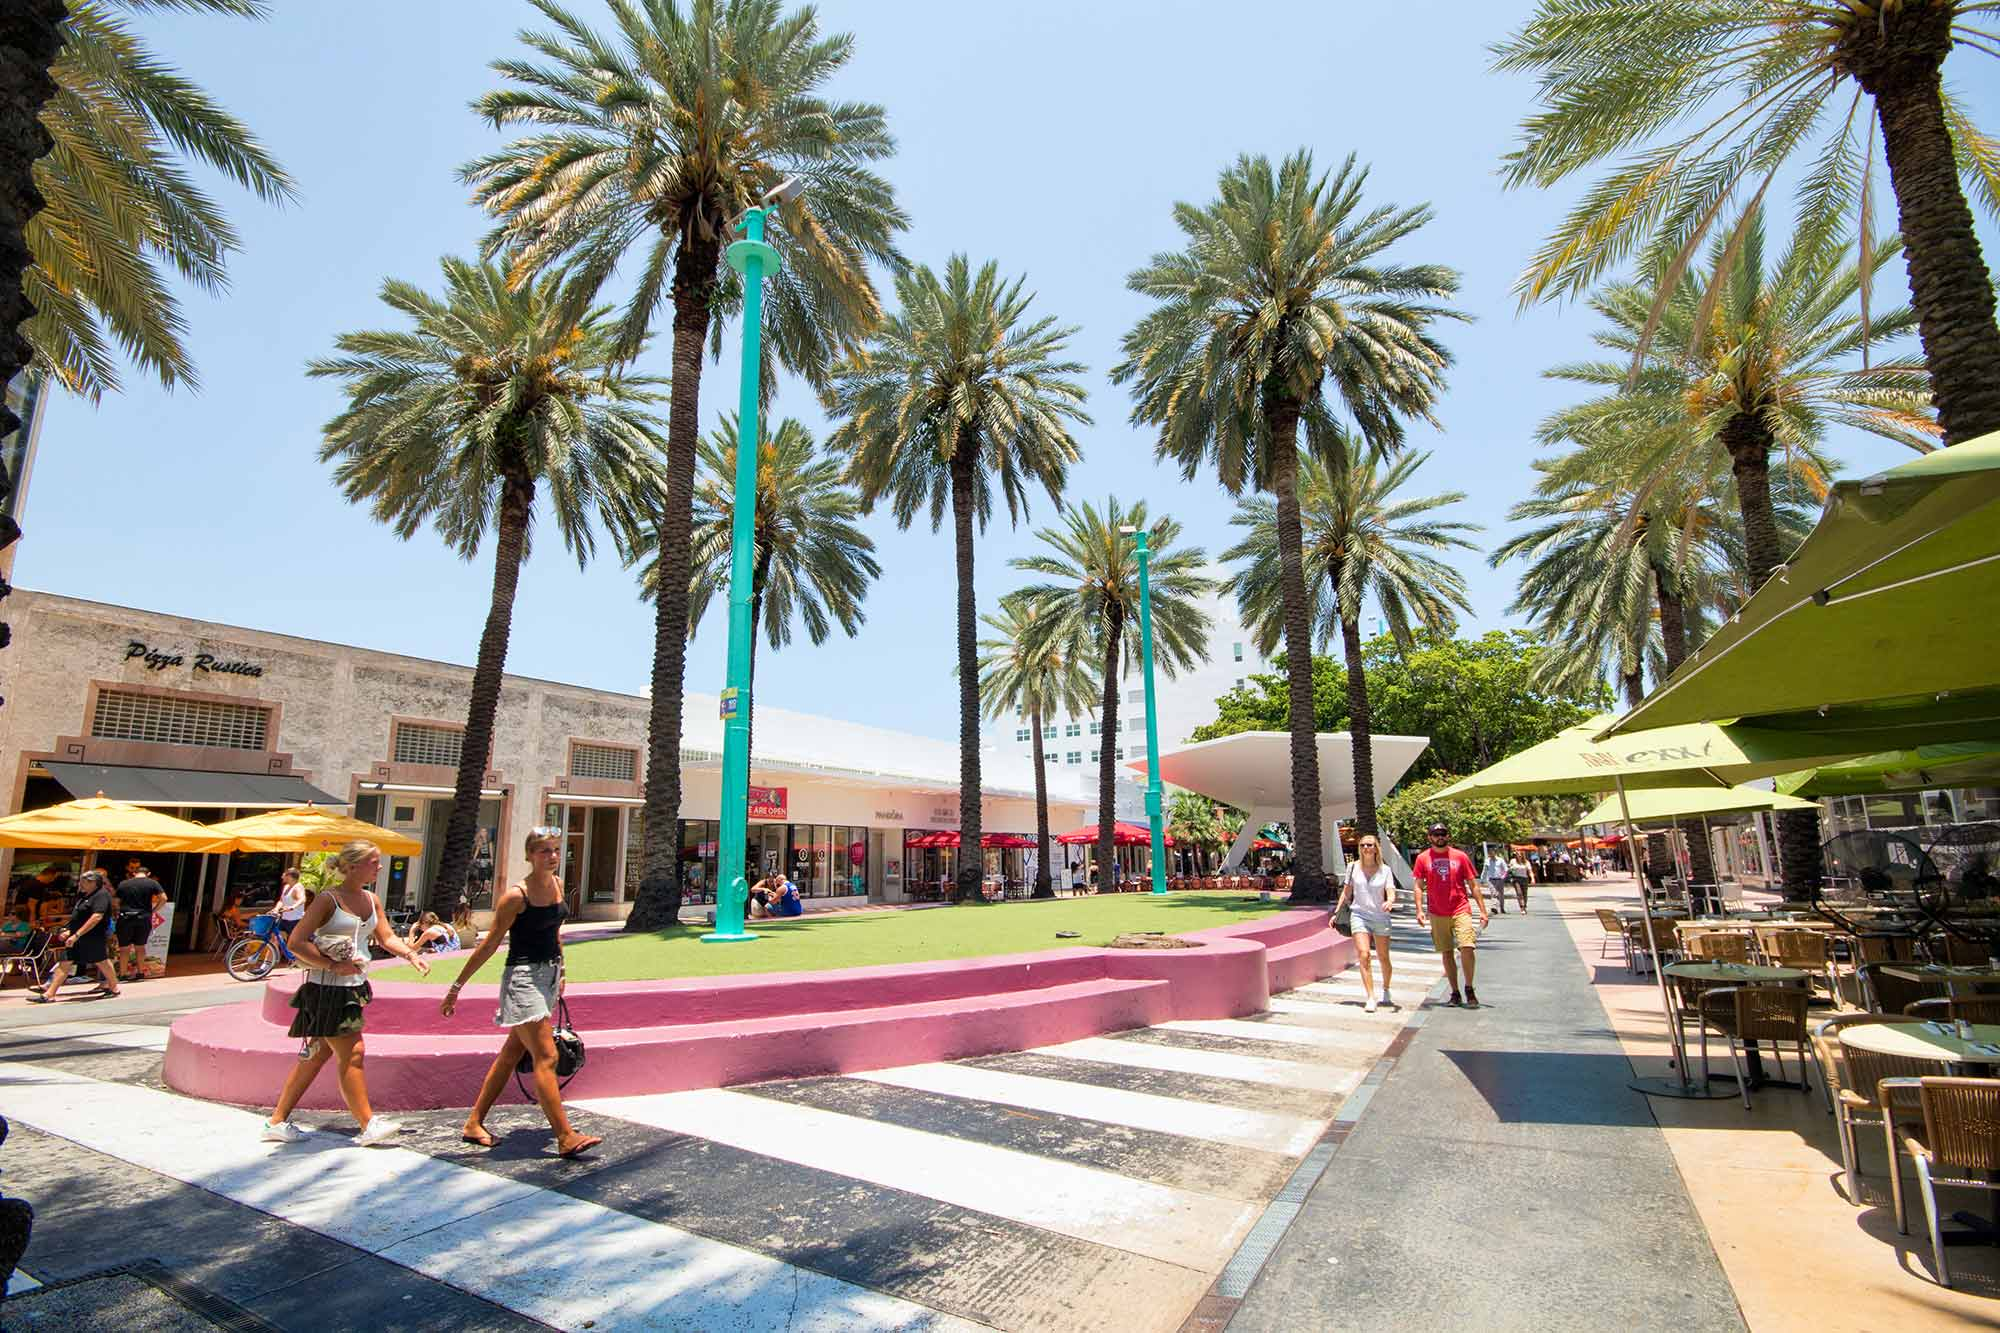 Miami Beach, FL, USA. Lincoln Road is where Miami comes together – to shop, to dine, to celebrate. With over designer boutiques, local merchants, national retail stores, and an outstanding selection of fine restaurants and bars there is something for everyone to enjoy.